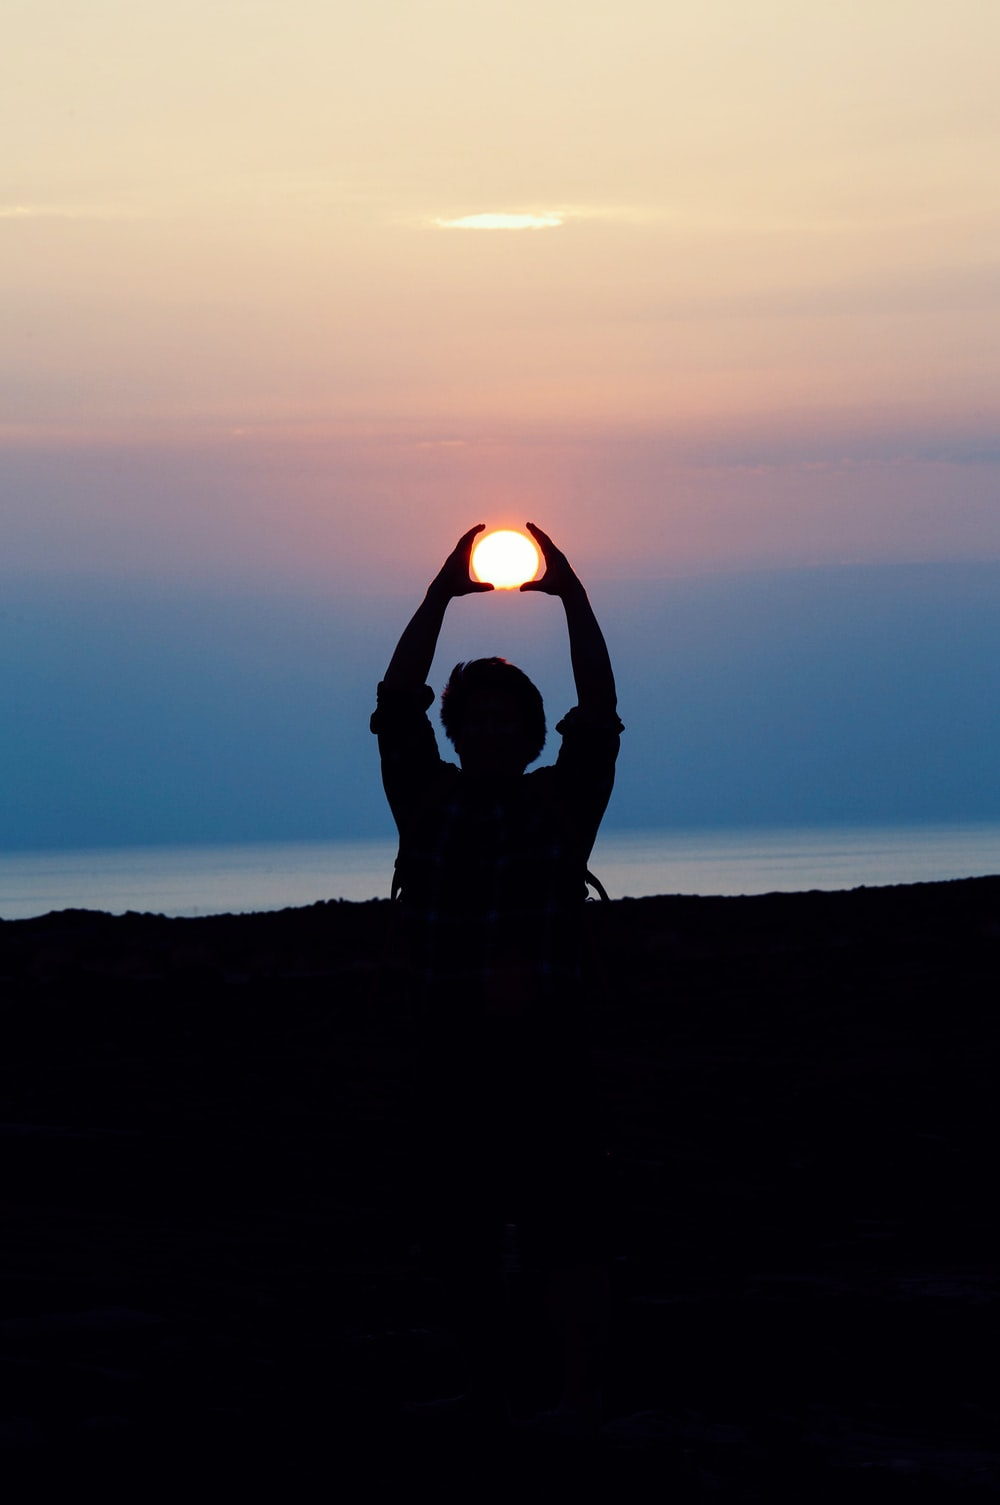 silhouette of person with both hands over his head tracing the sun during golden hour photography